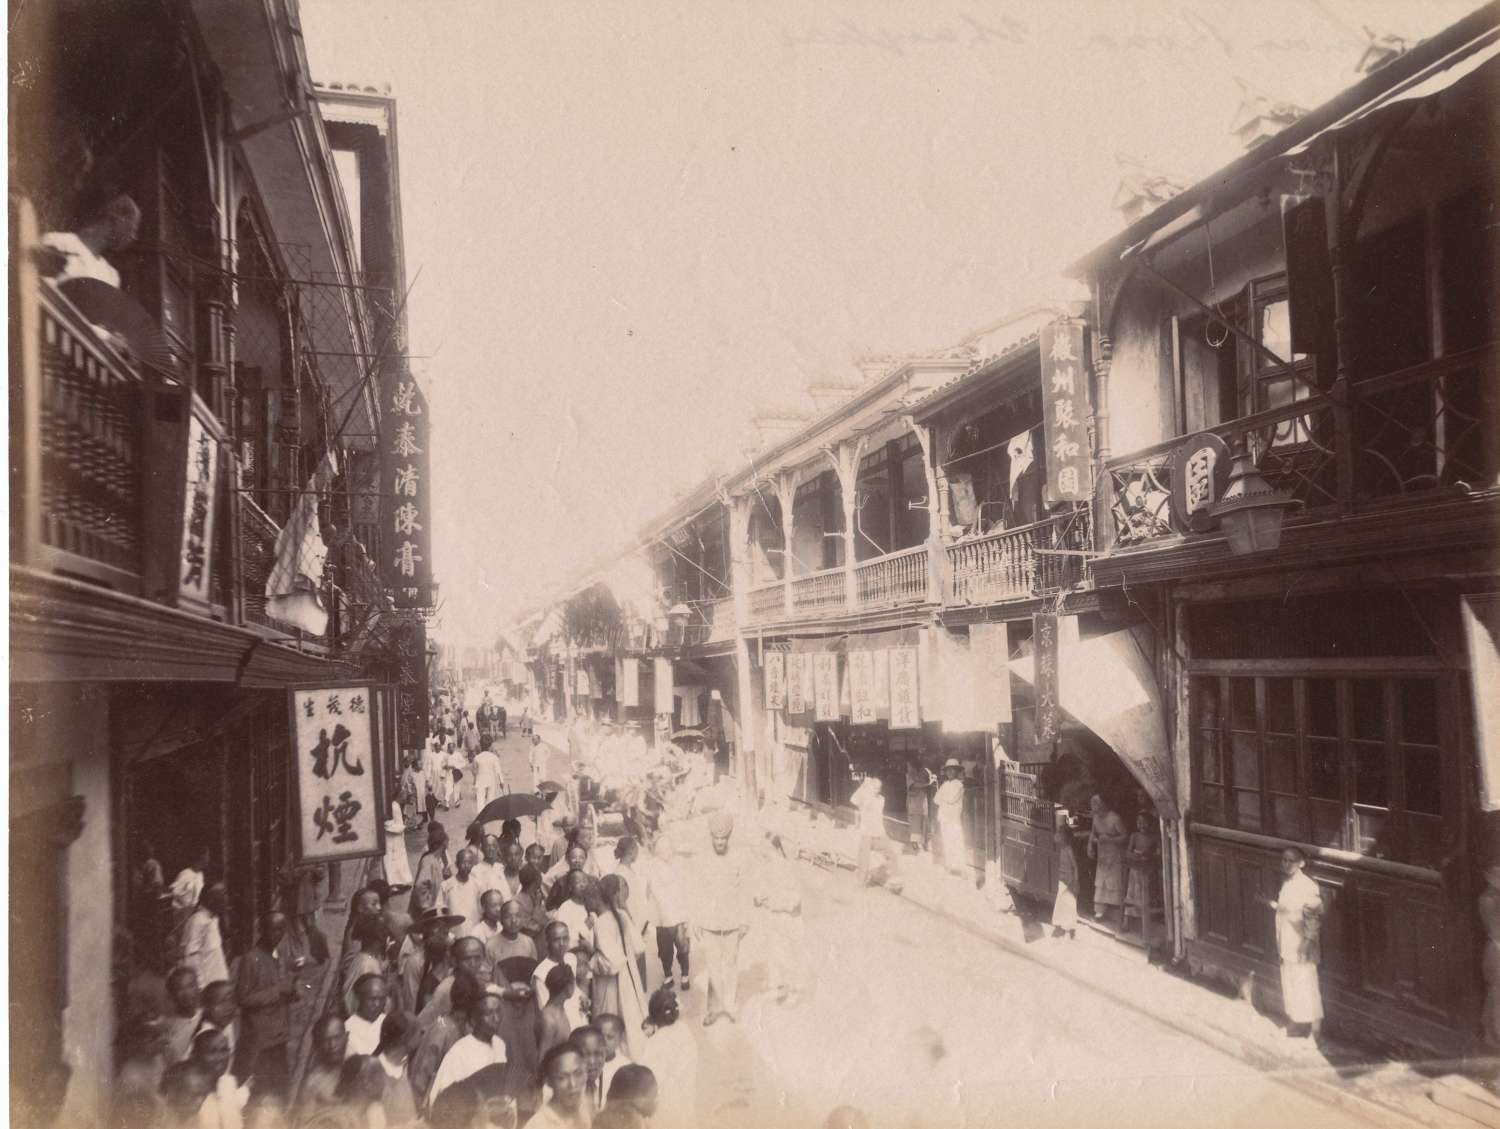 Hanan Road Shanghai China C1880